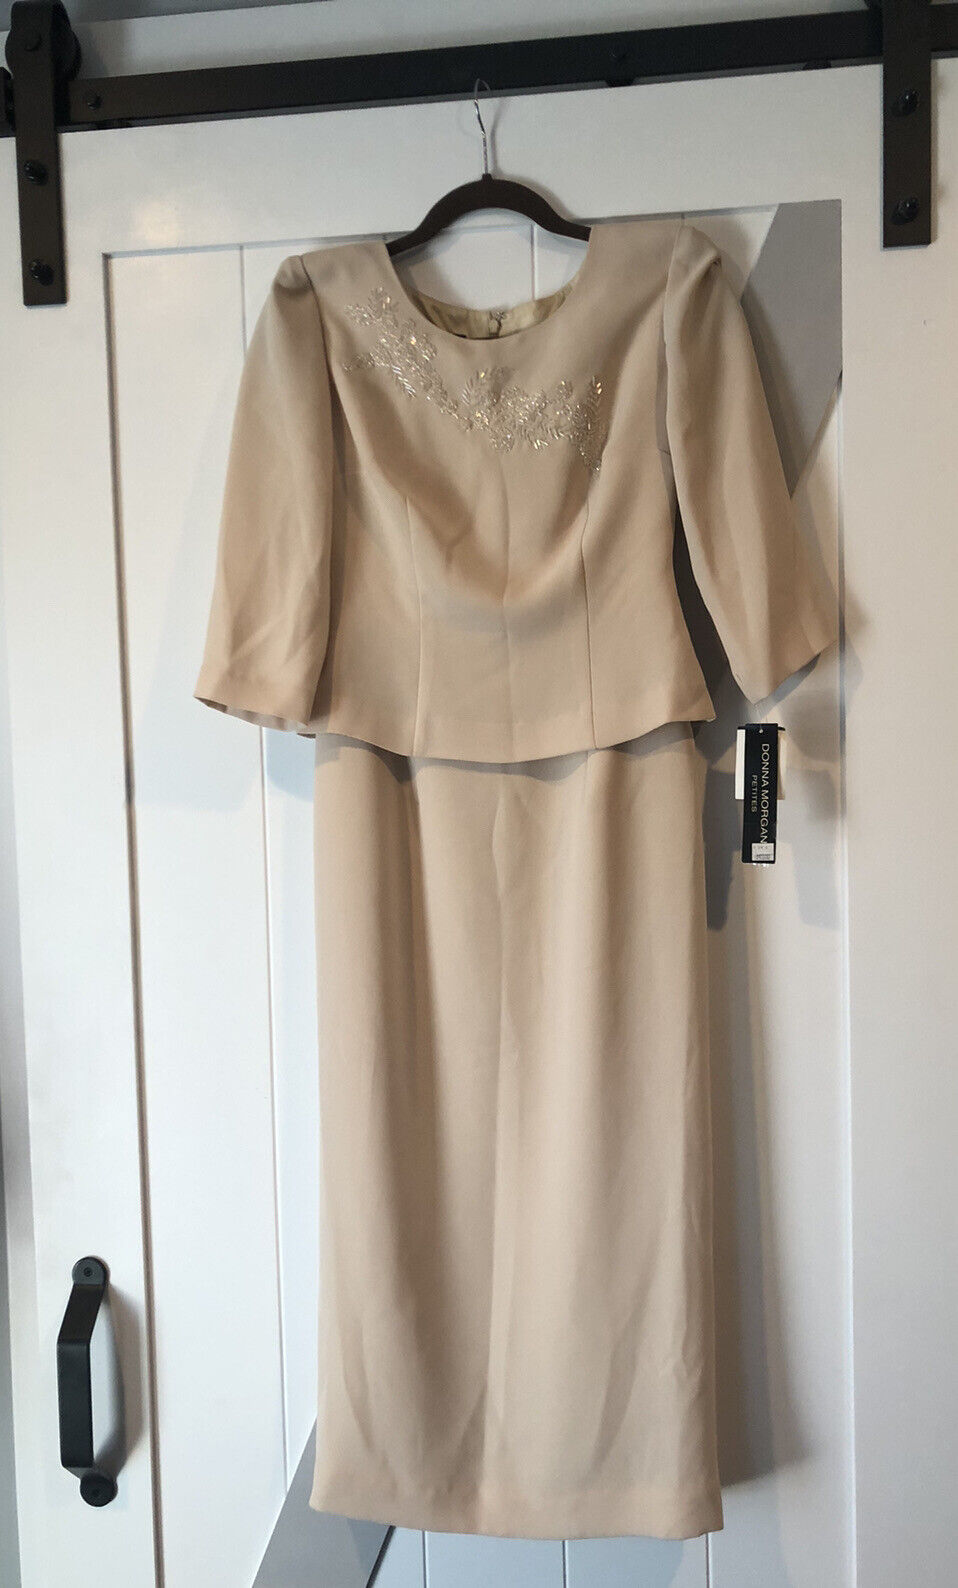 New Dress Size 4 Petite Donna Morgan Formal Mother Of Bride Maid Of Honor Sand